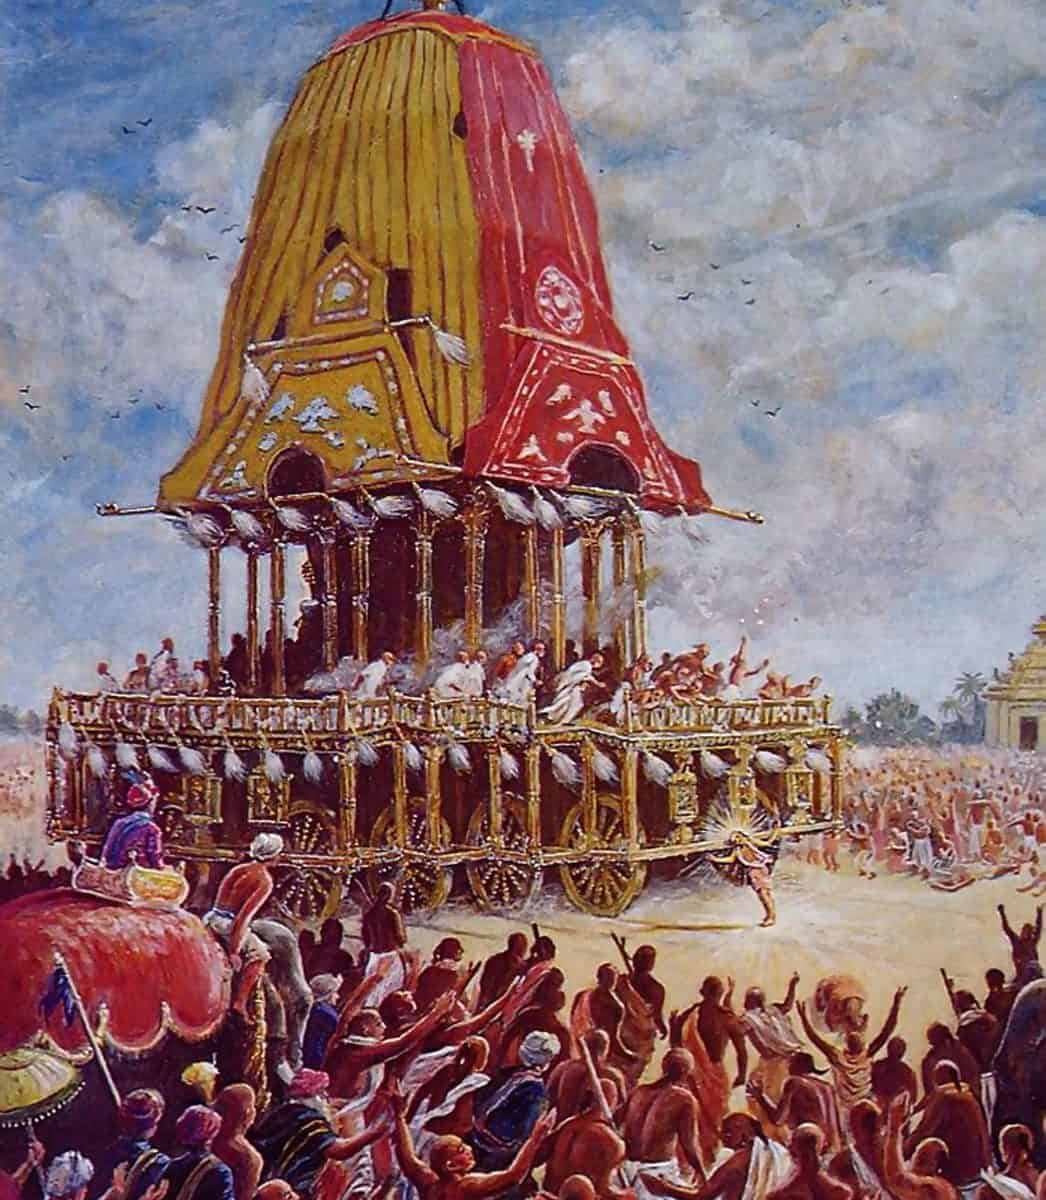 Lord Caitanya Mahaprabhu pulled the chariot from the Jagannatha Temple